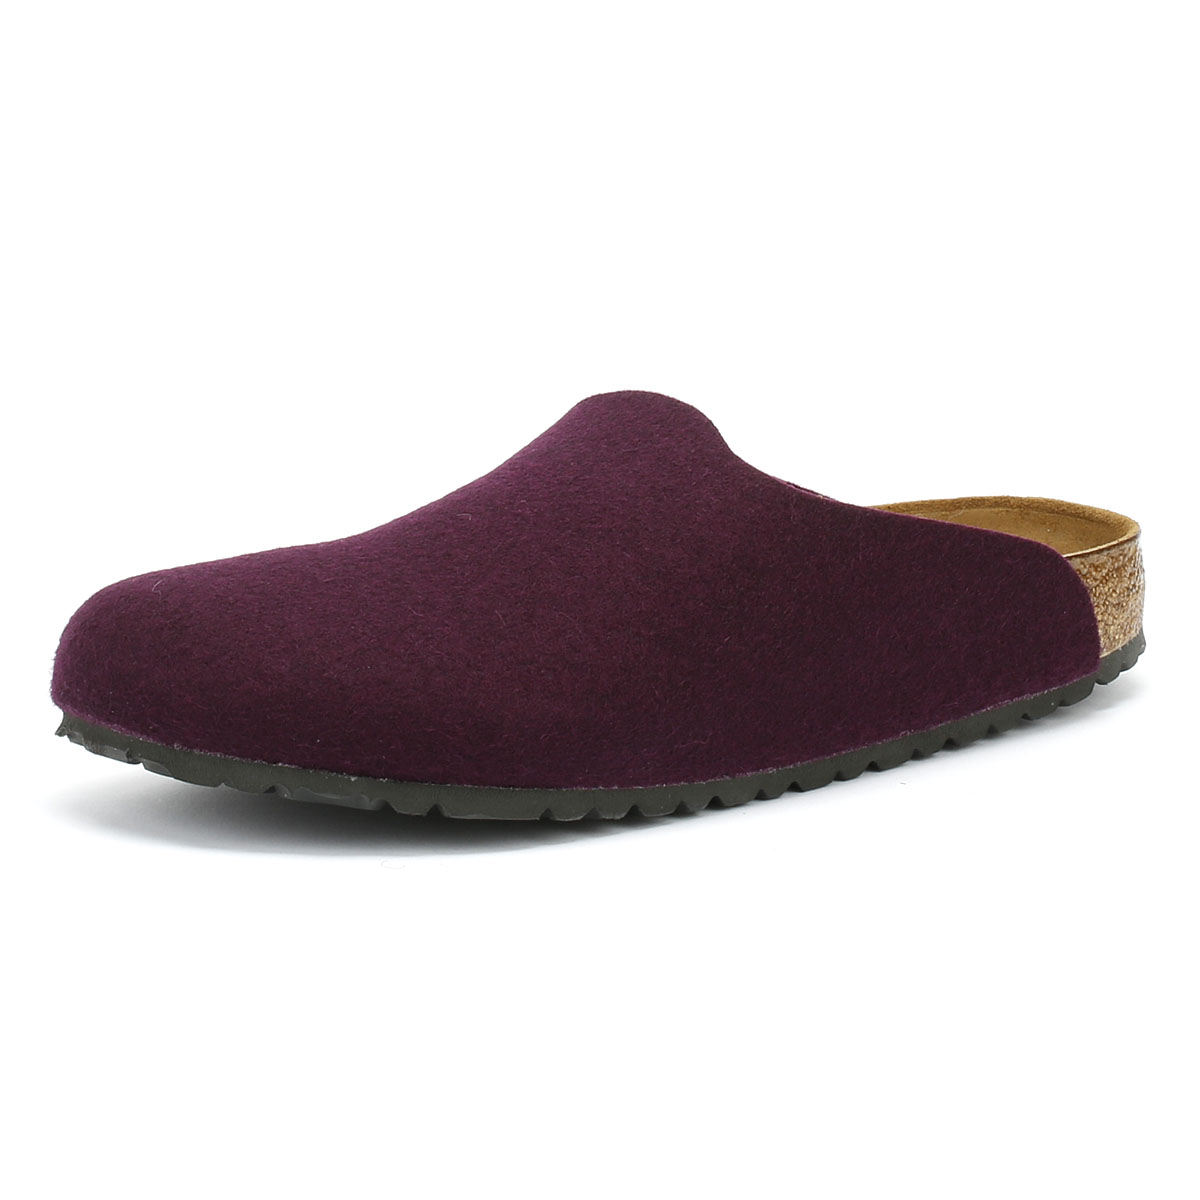 a5bbf0c28718 Details about Birkenstock Amsterdam Womens Aubergine Slippers Home Shoes